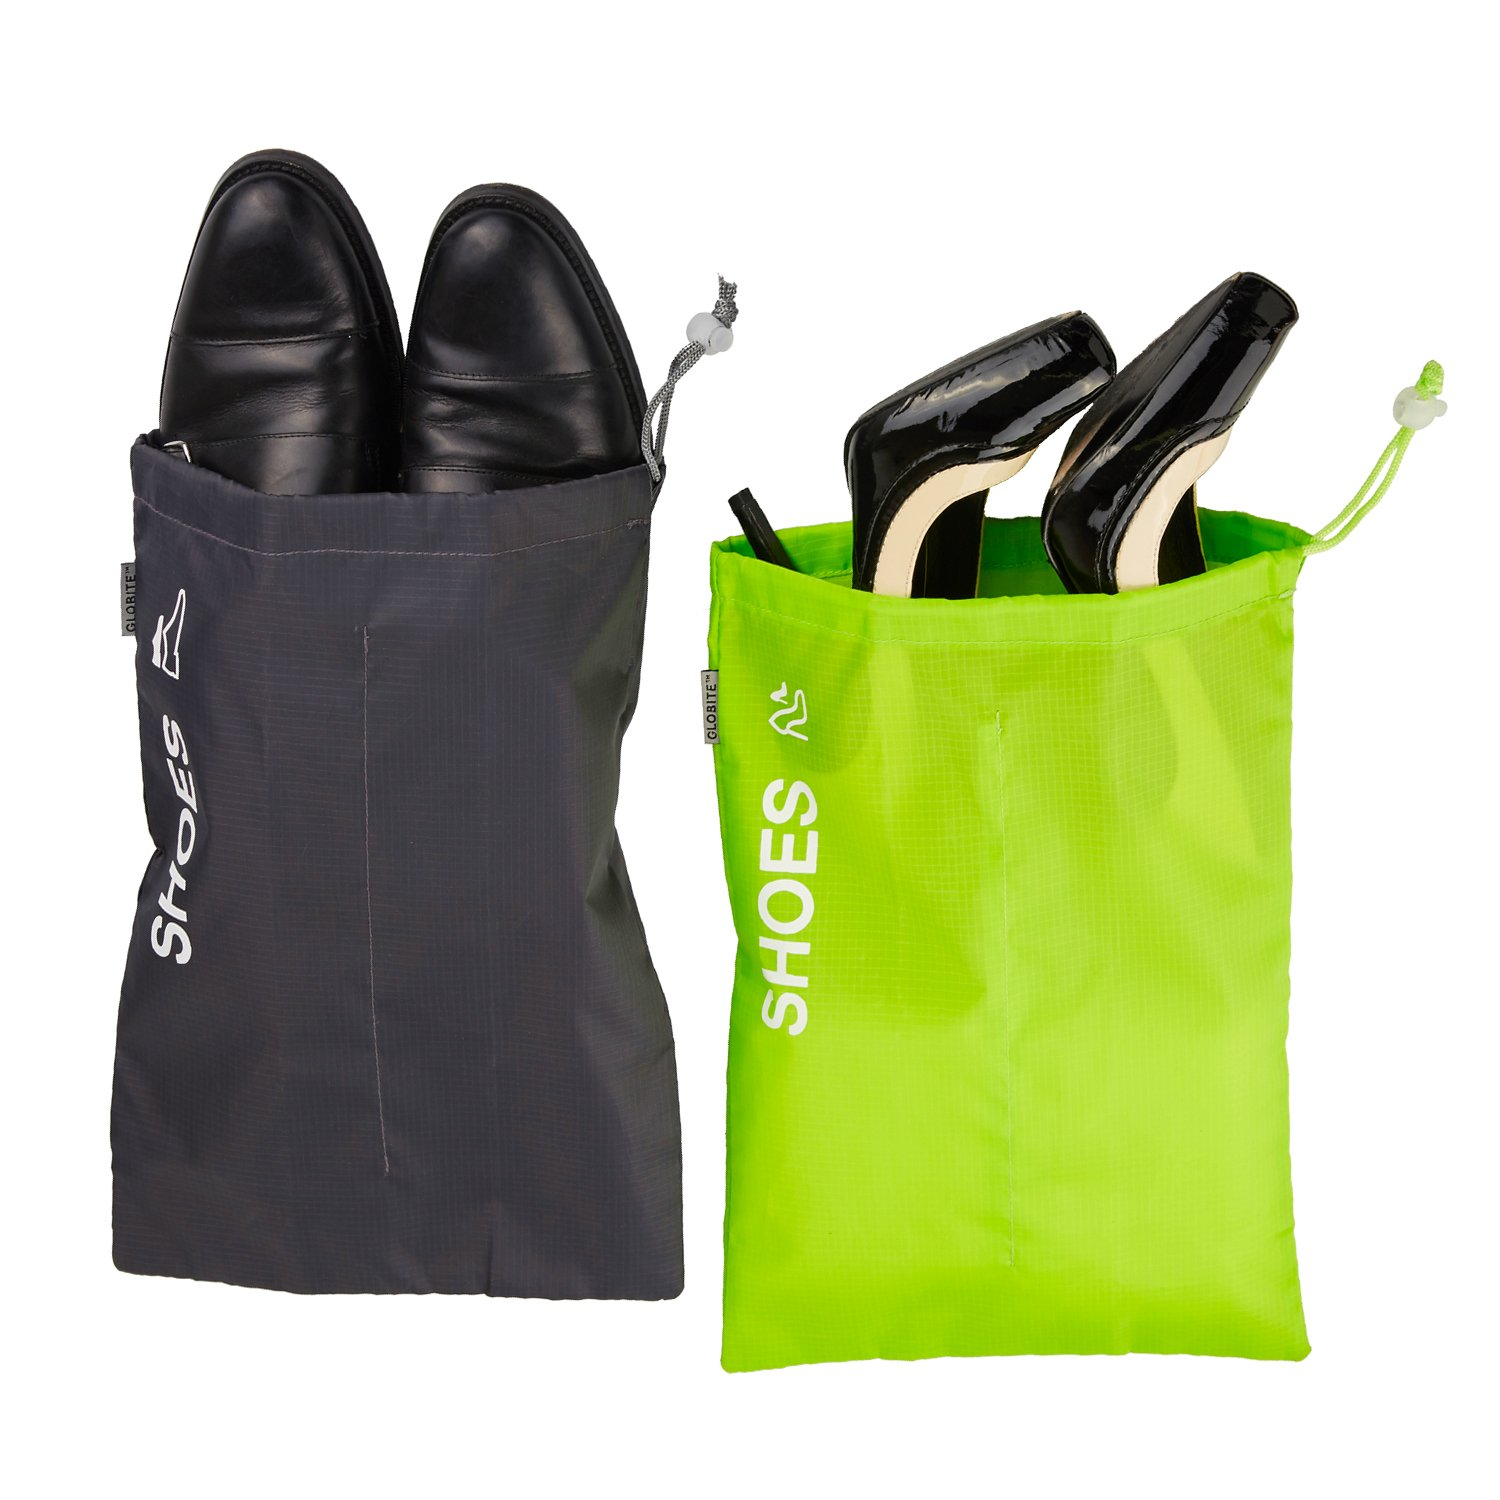 Storage Gym 2 pcs Office and Dance Tote//Pouch Shoe Bags for Travel Keeps Dirt Out of Your Luggage